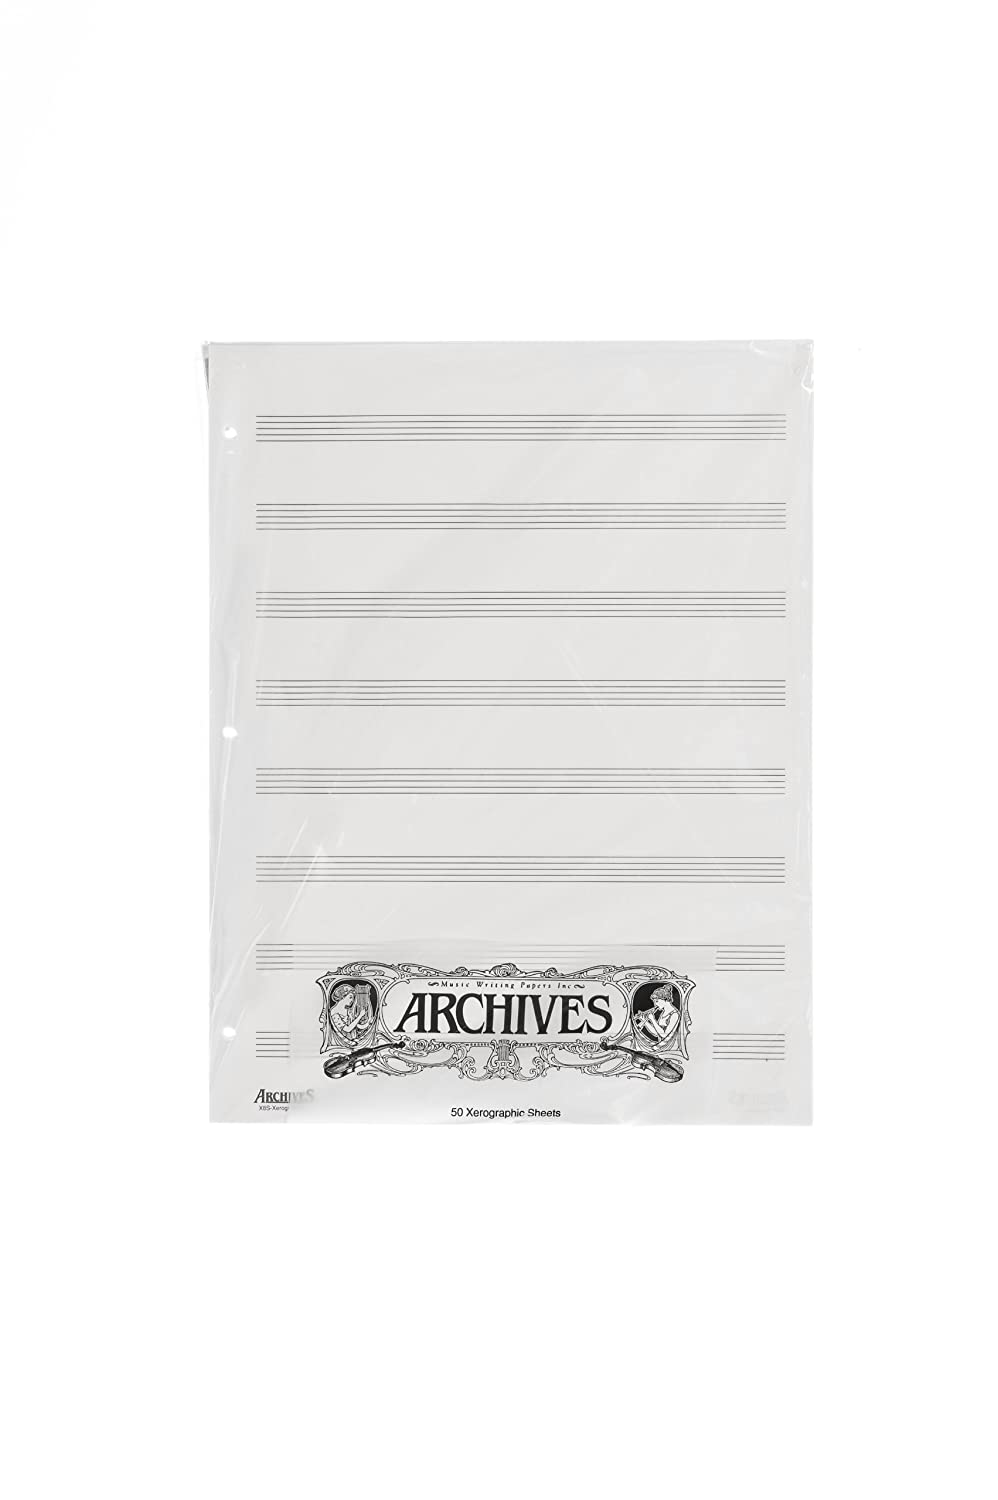 Archives Looseleaf Xerographic Manuscript Paper, 8 Stave, 50 Pages D'Addario &Co. Inc X8S